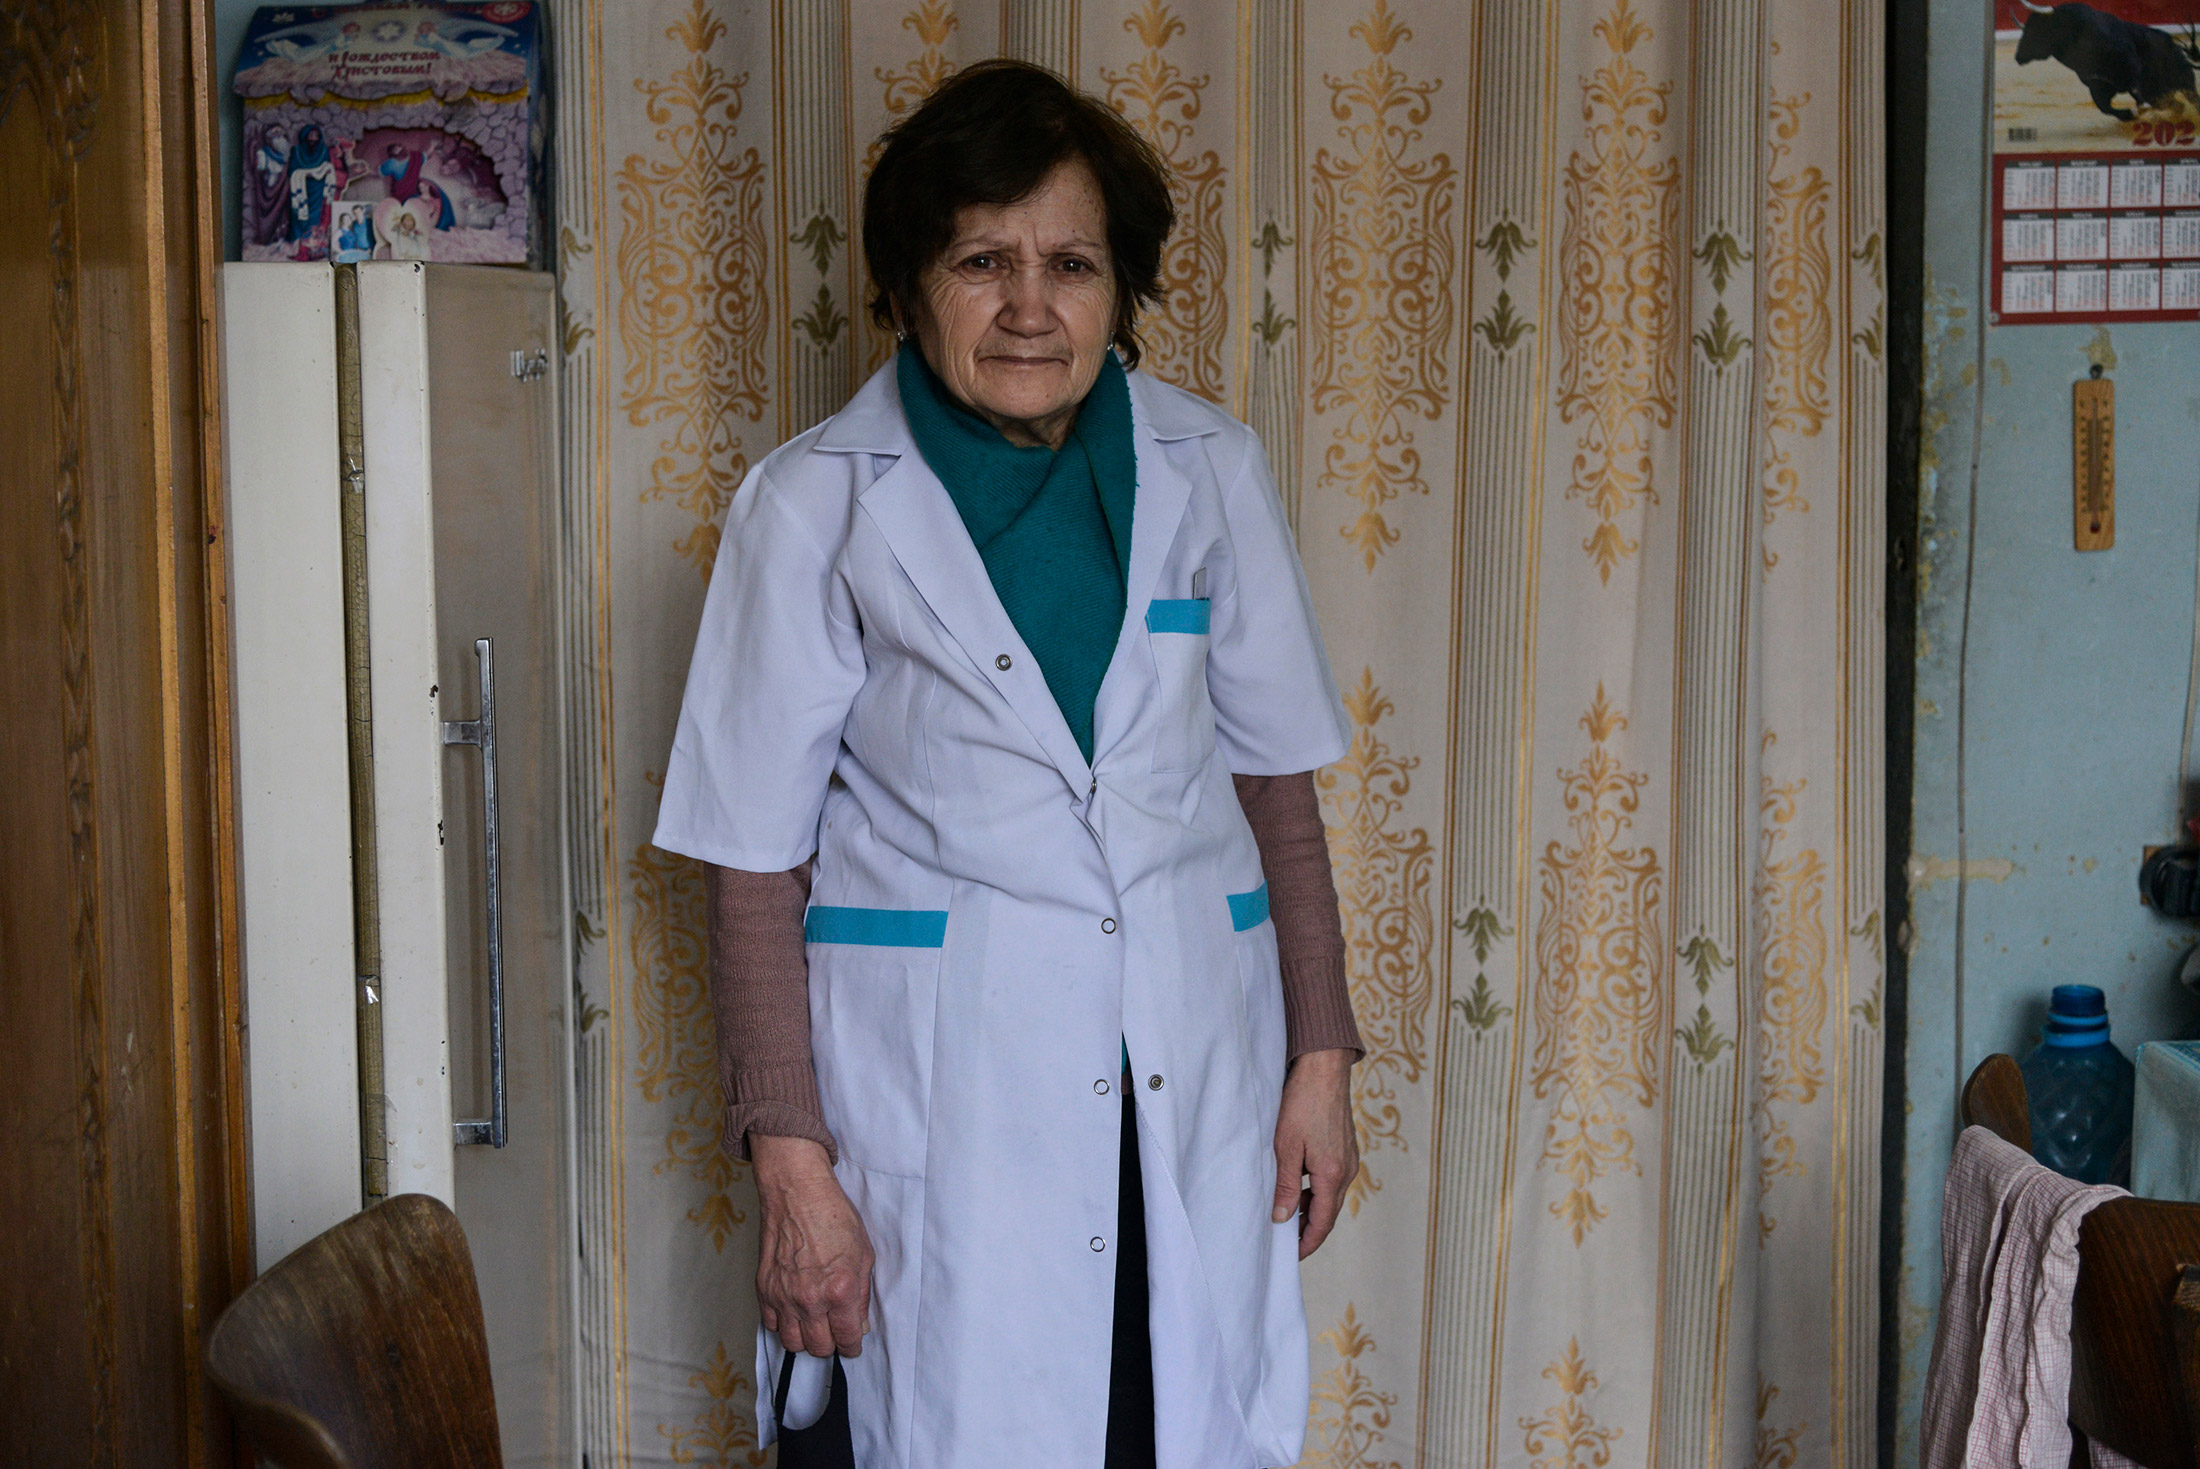 Sveta Khachatyran, 68, was a mathematician before the collapse of the Soviet Union. She worked at th ...